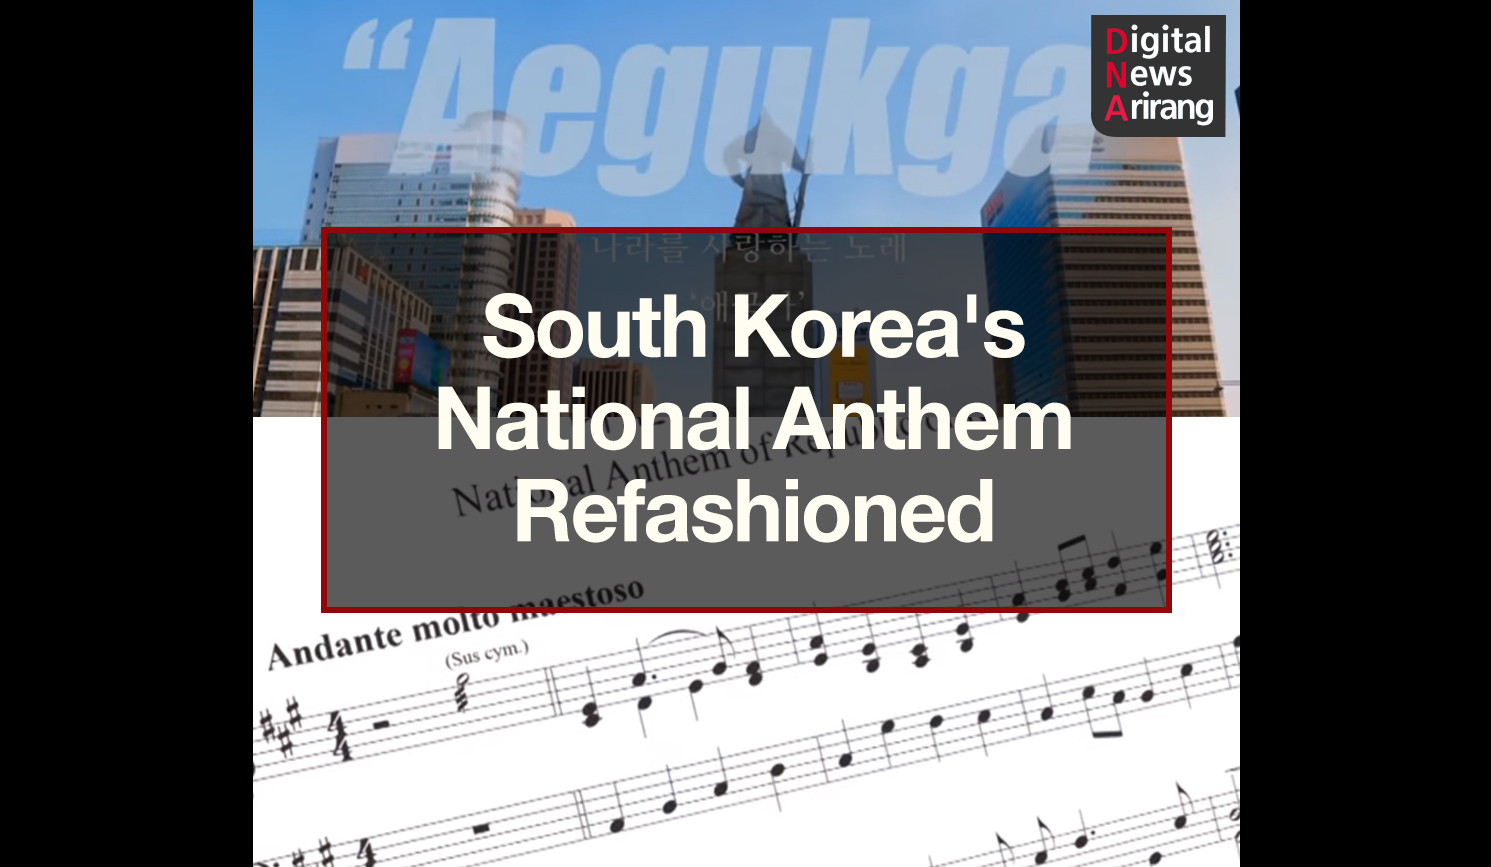 [DNA] South Korea's National Anthem Refashioned